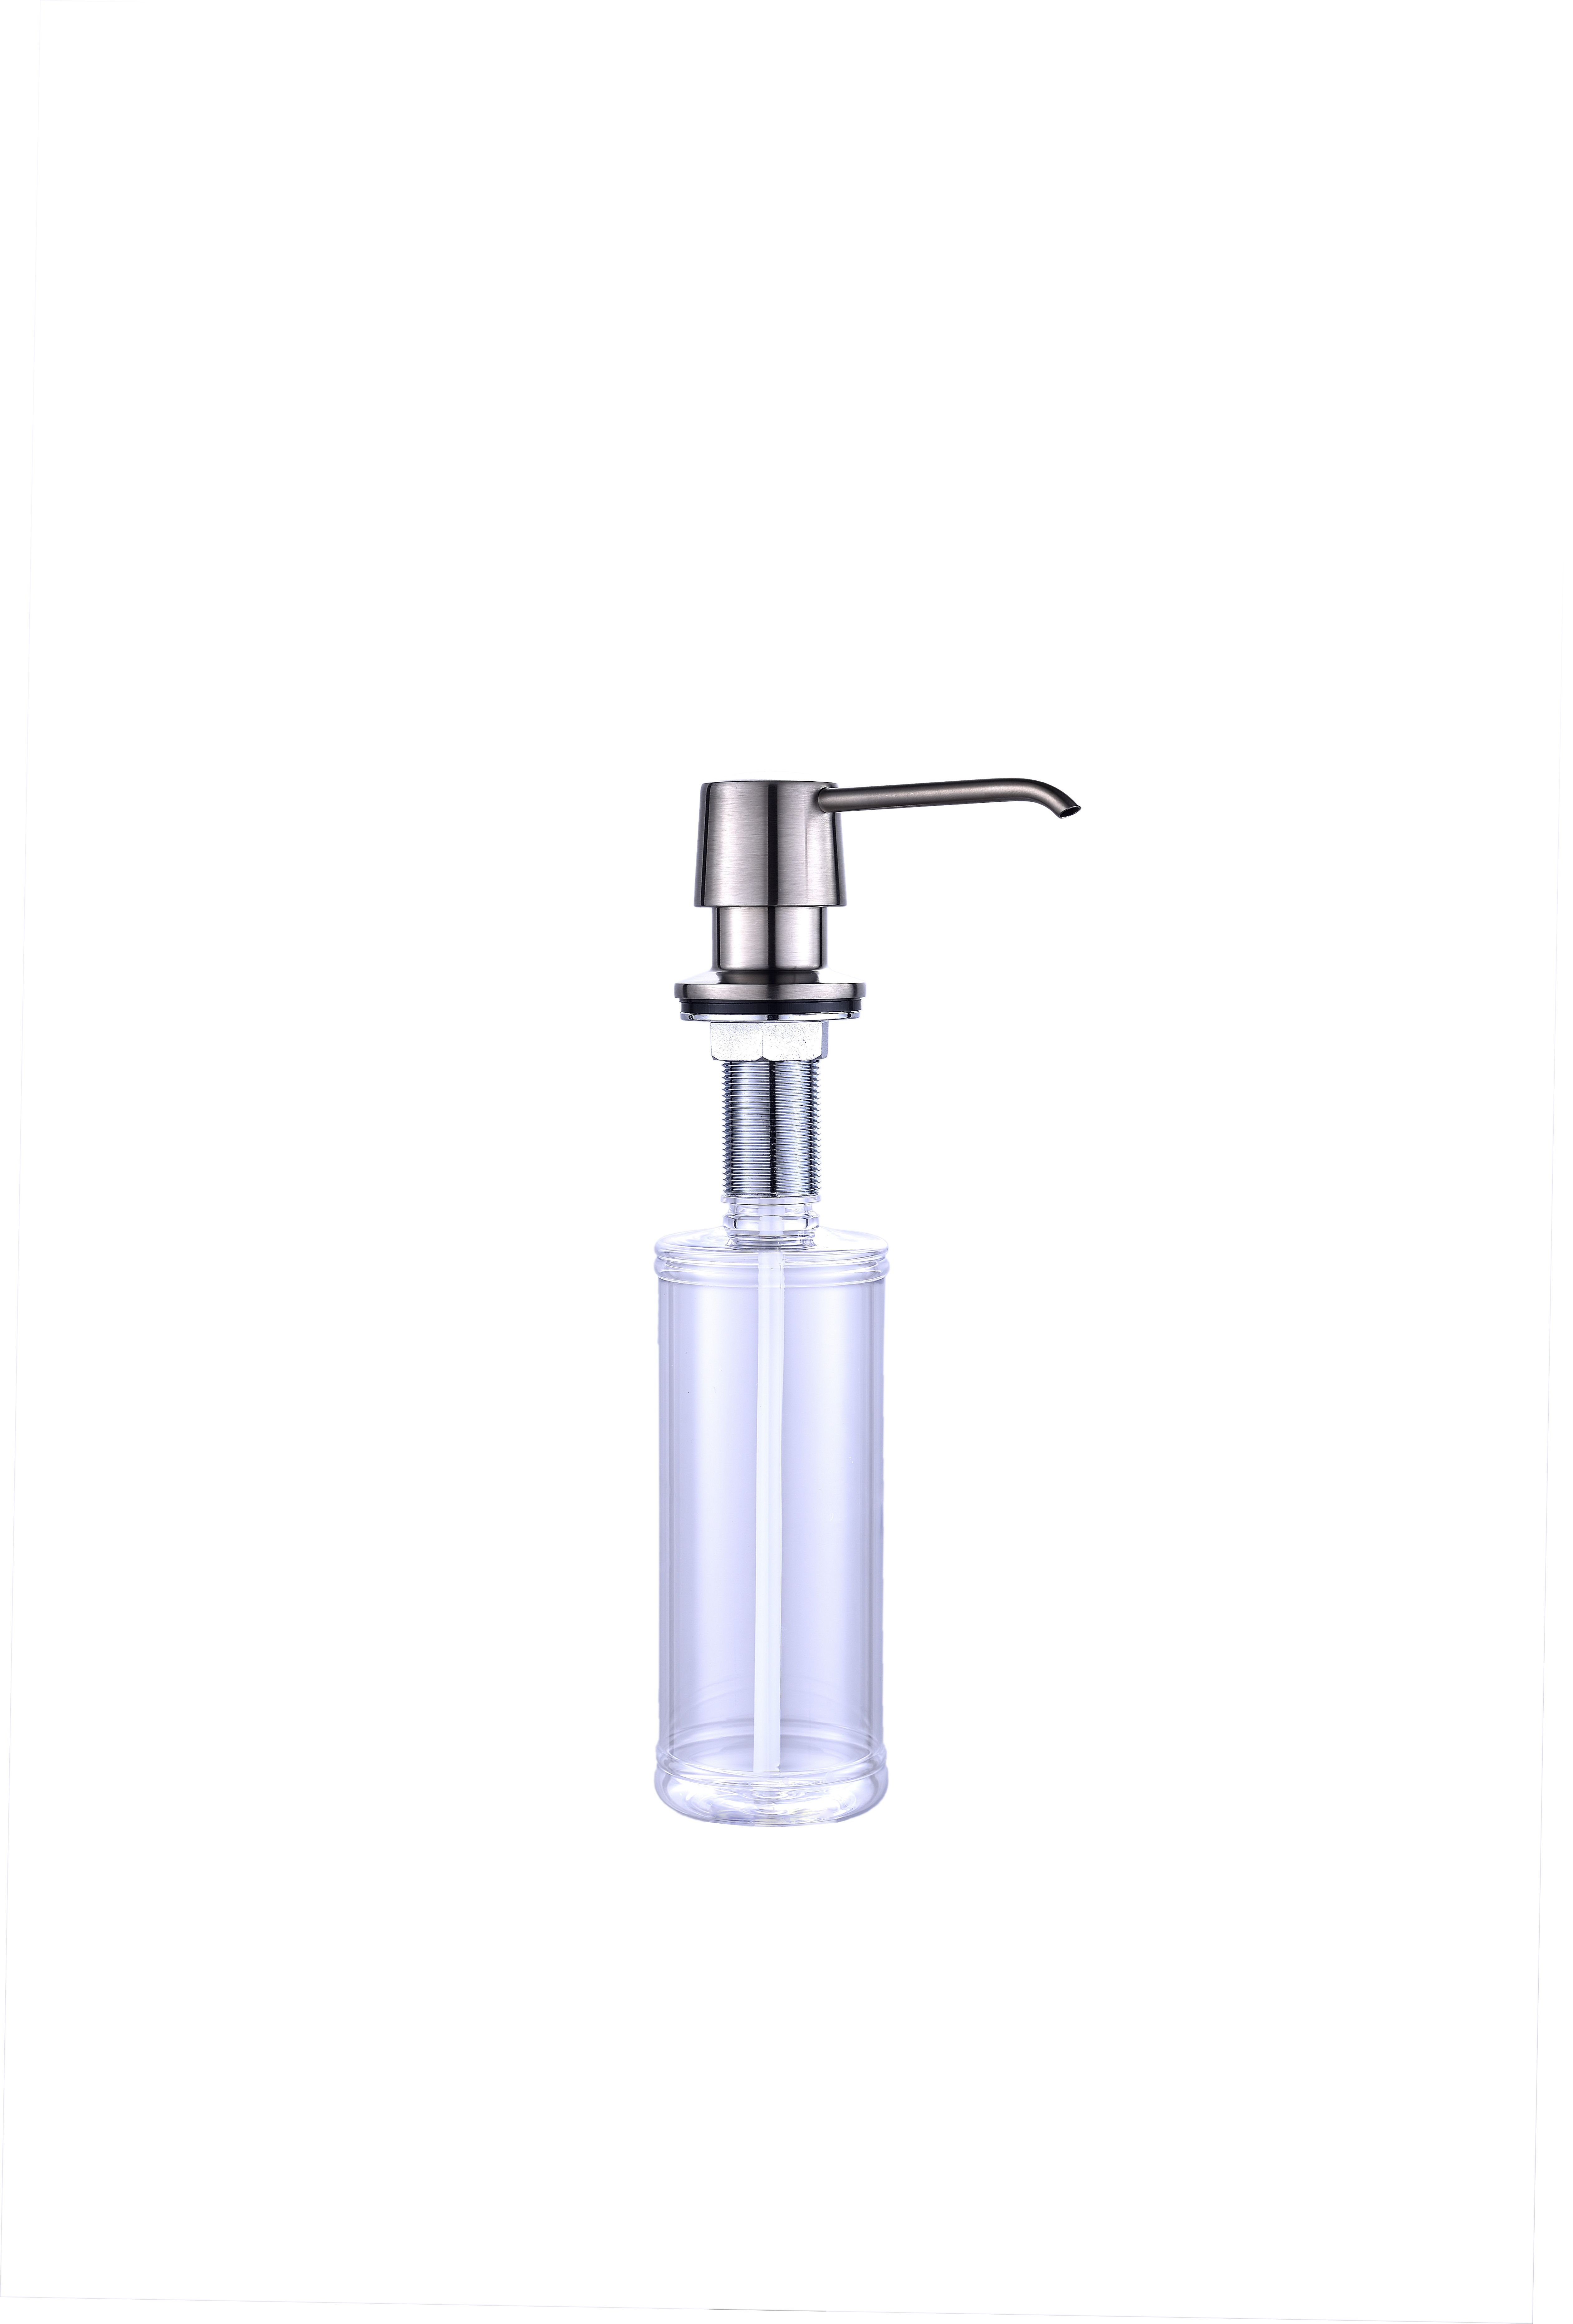 Forious Soap Dispenser For Kitchen Sink Soap Dispenser Dispenser Sink Soap Dispenser